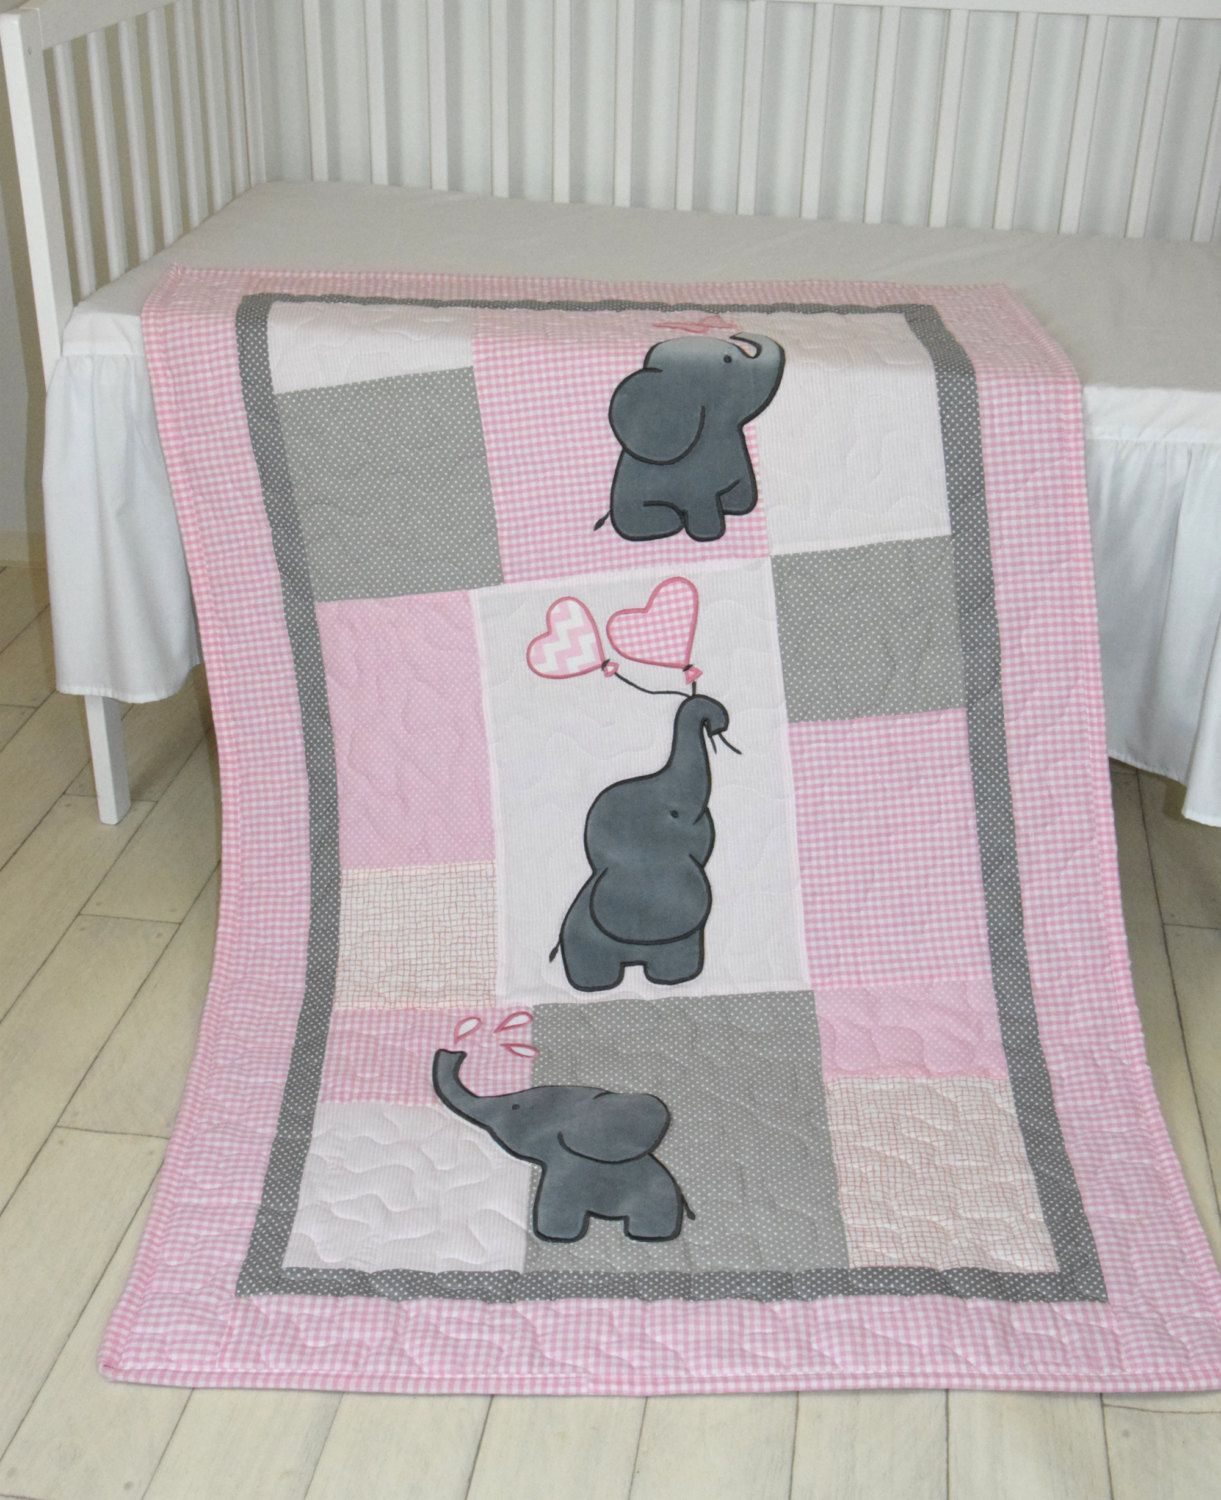 Gorgeous Elephant Pram Blanket by Nursery Time